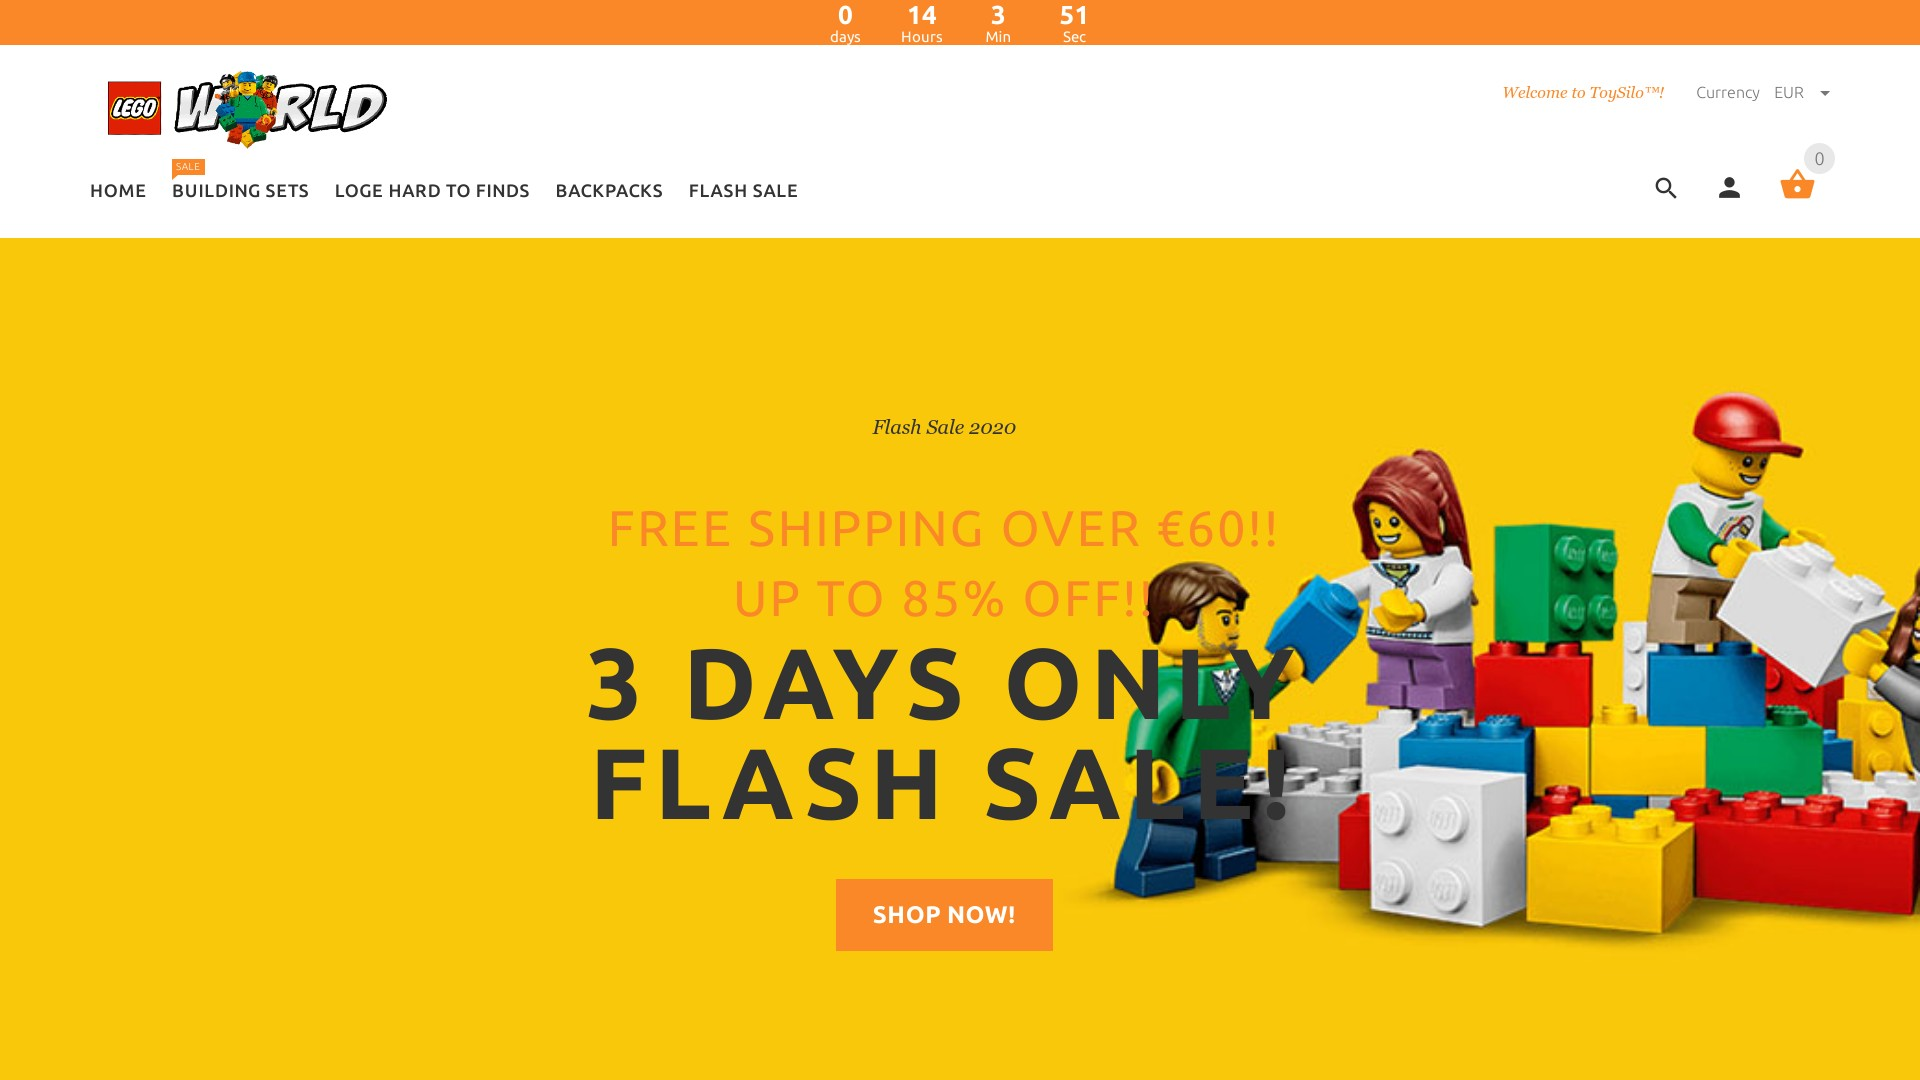 Flash Mffdk is a Scam and Fake Online Store